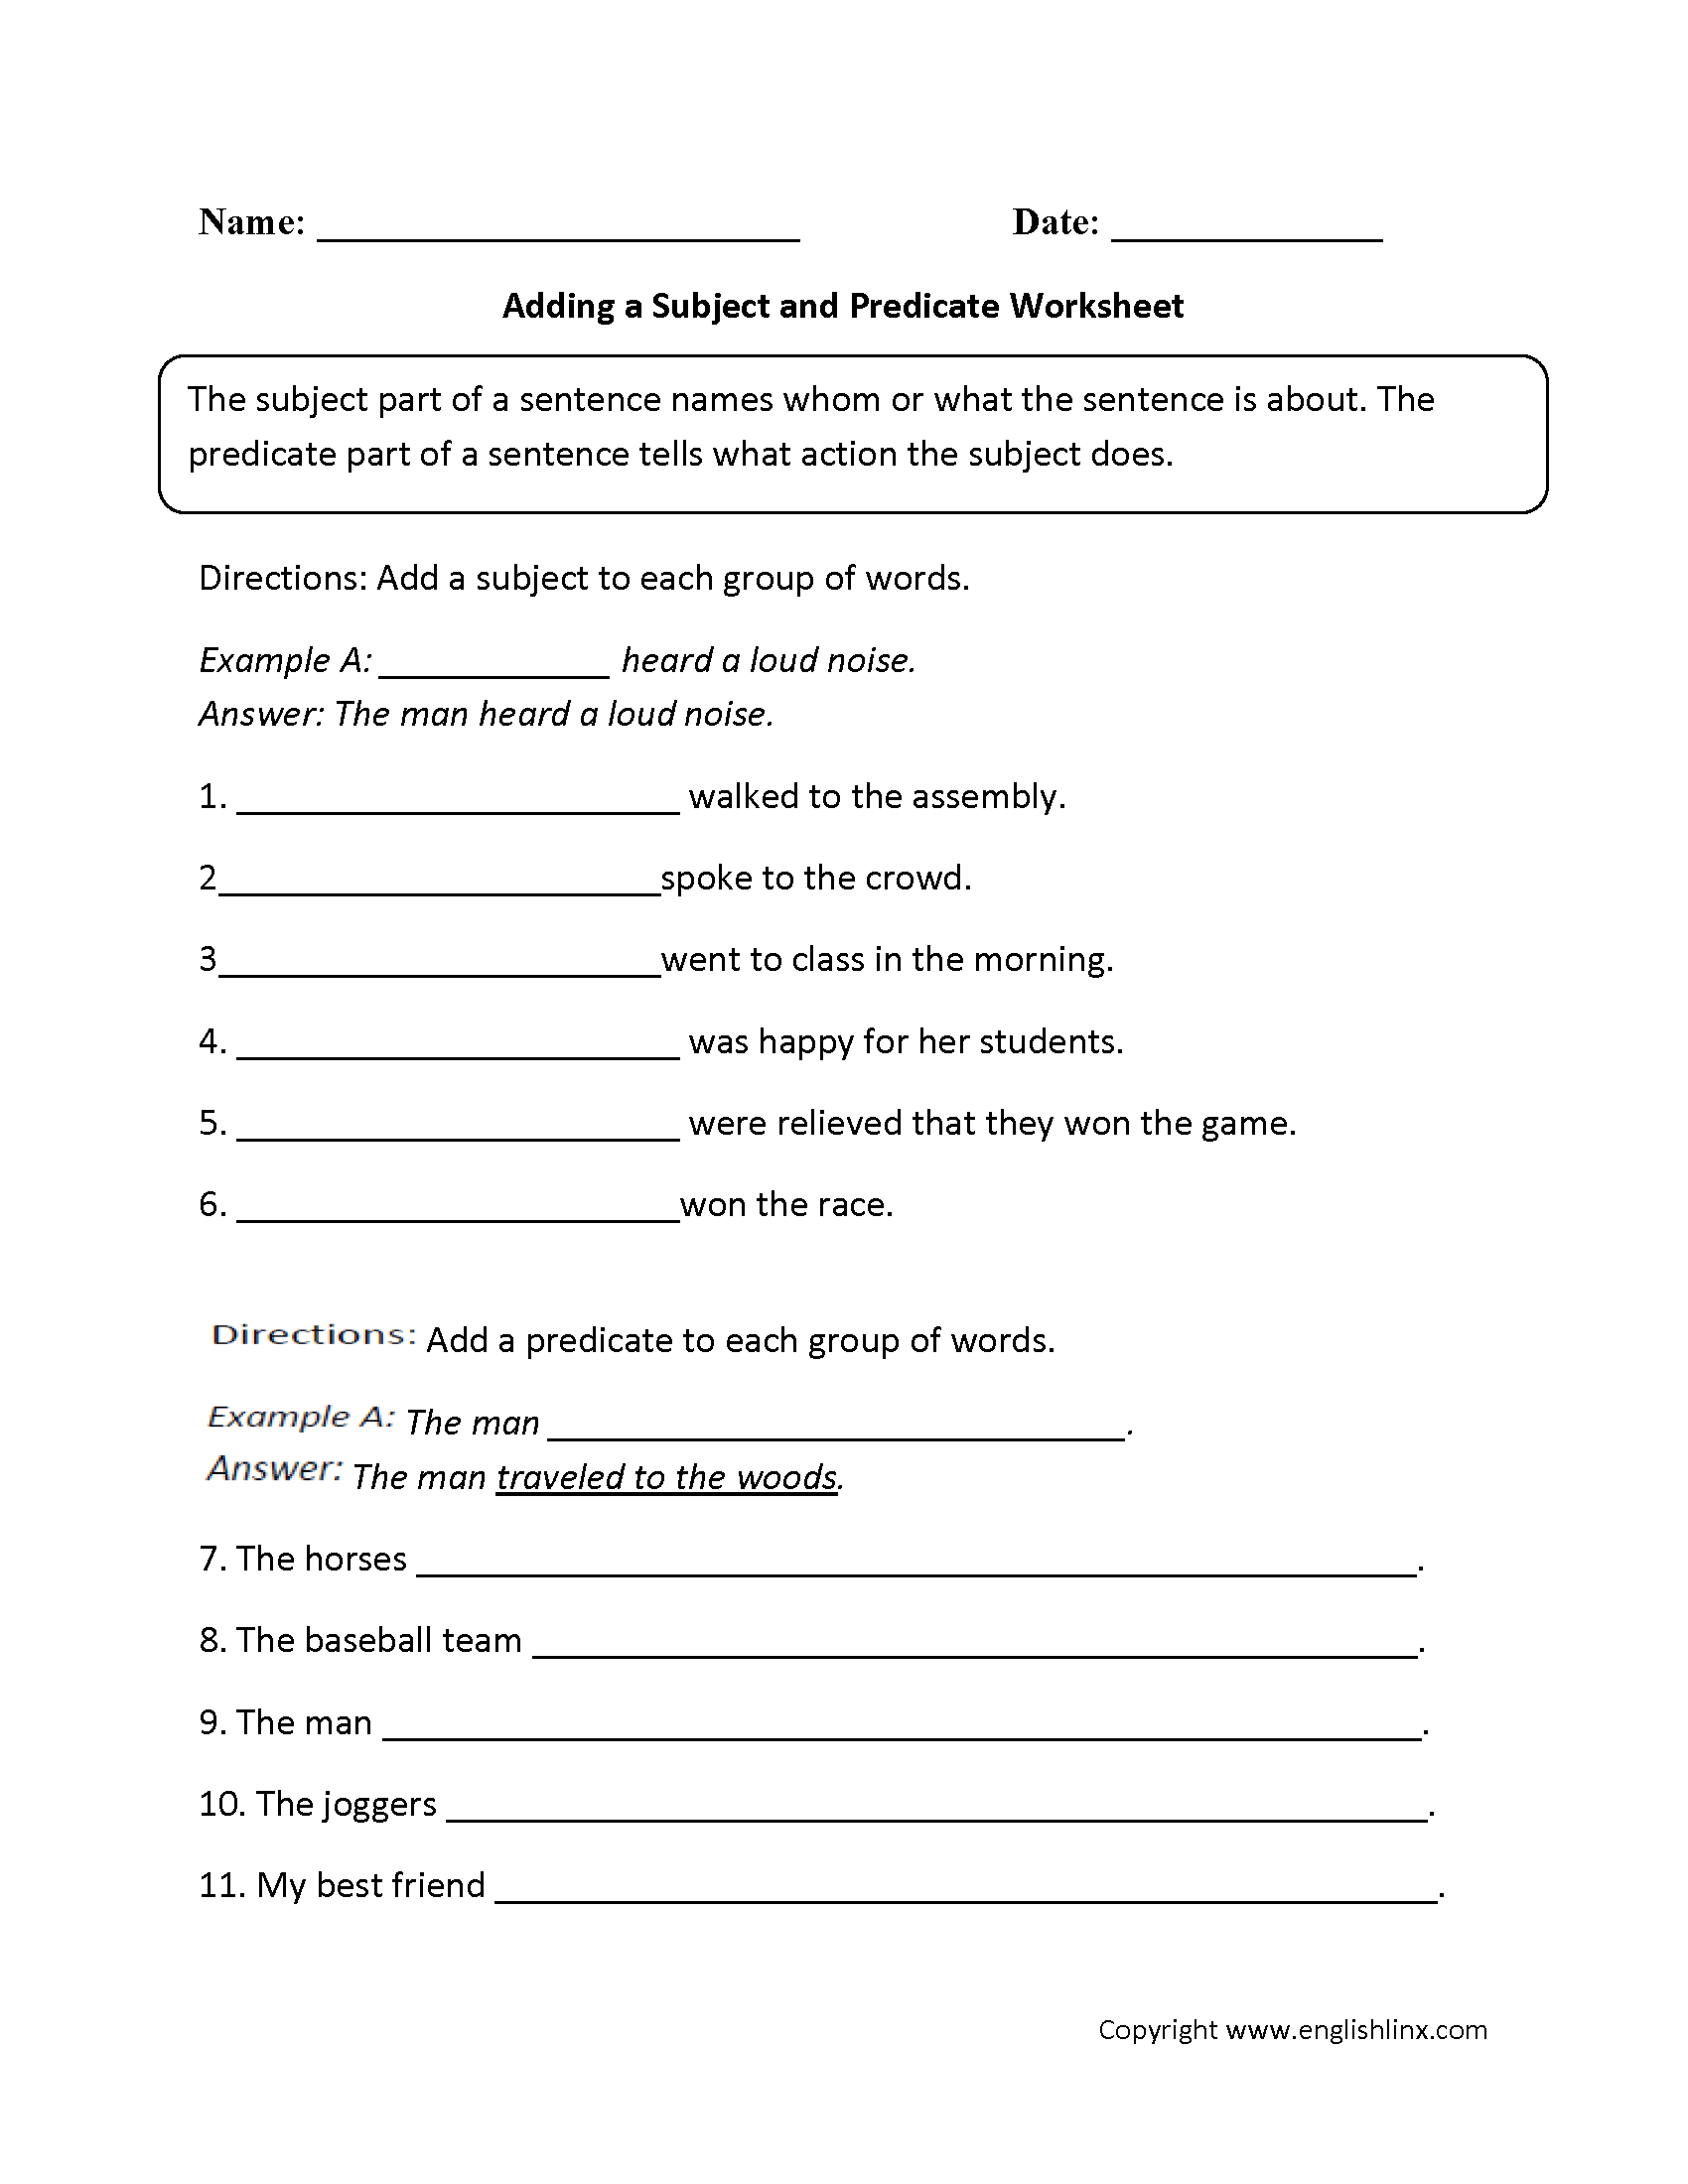 Printables 9th Grade English Worksheets englishlinx com subject and predicate worksheets adding a worksheet